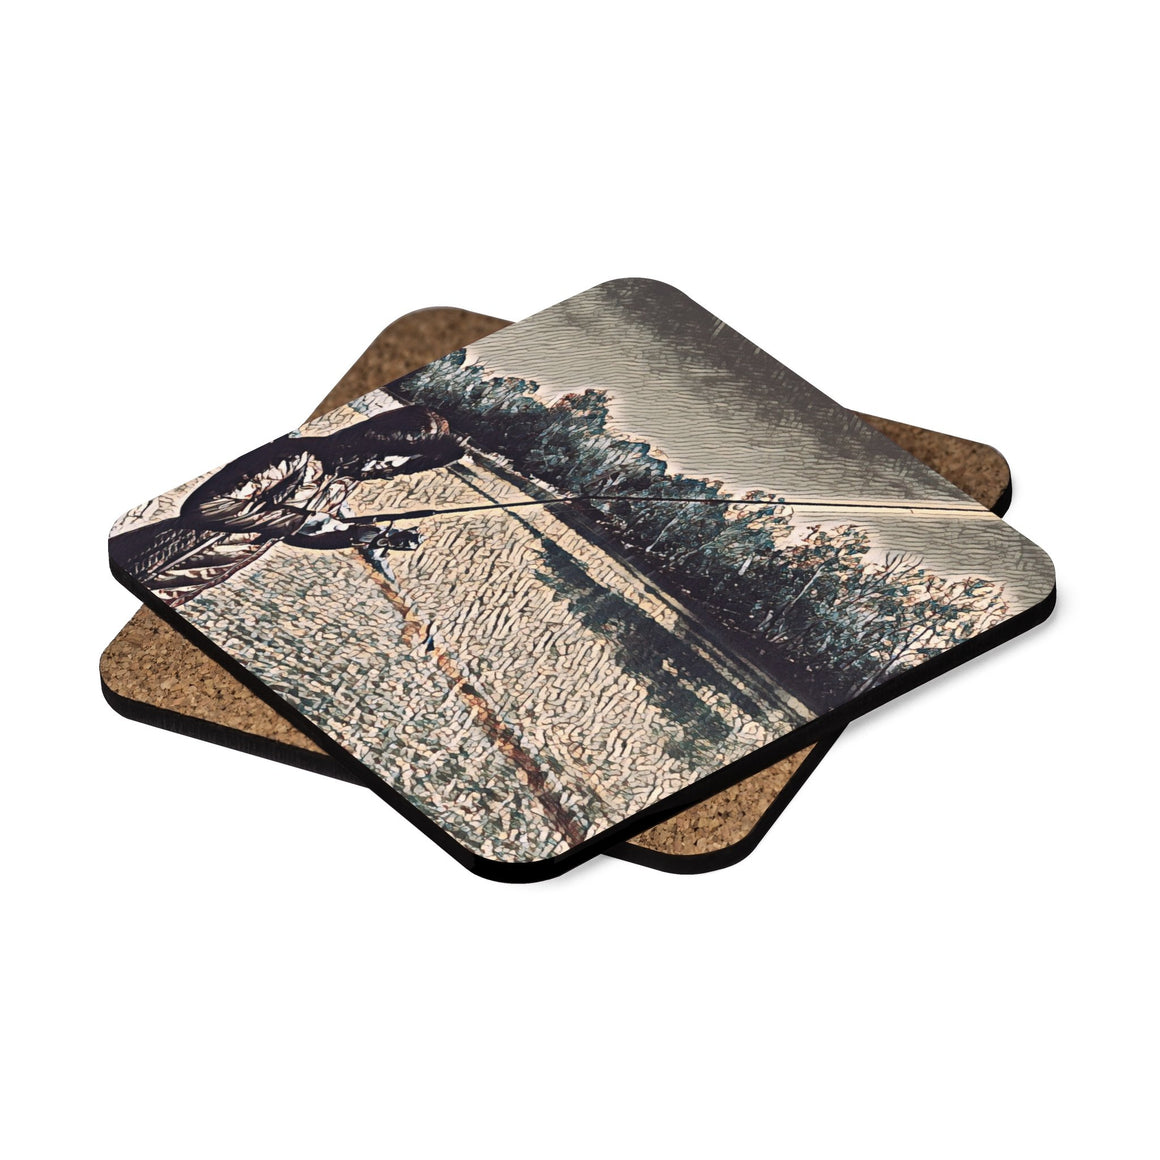 Levi Thang Fishing Design 20 Square Hardboard Coaster Set - 4pcs - I Am A Dreamer